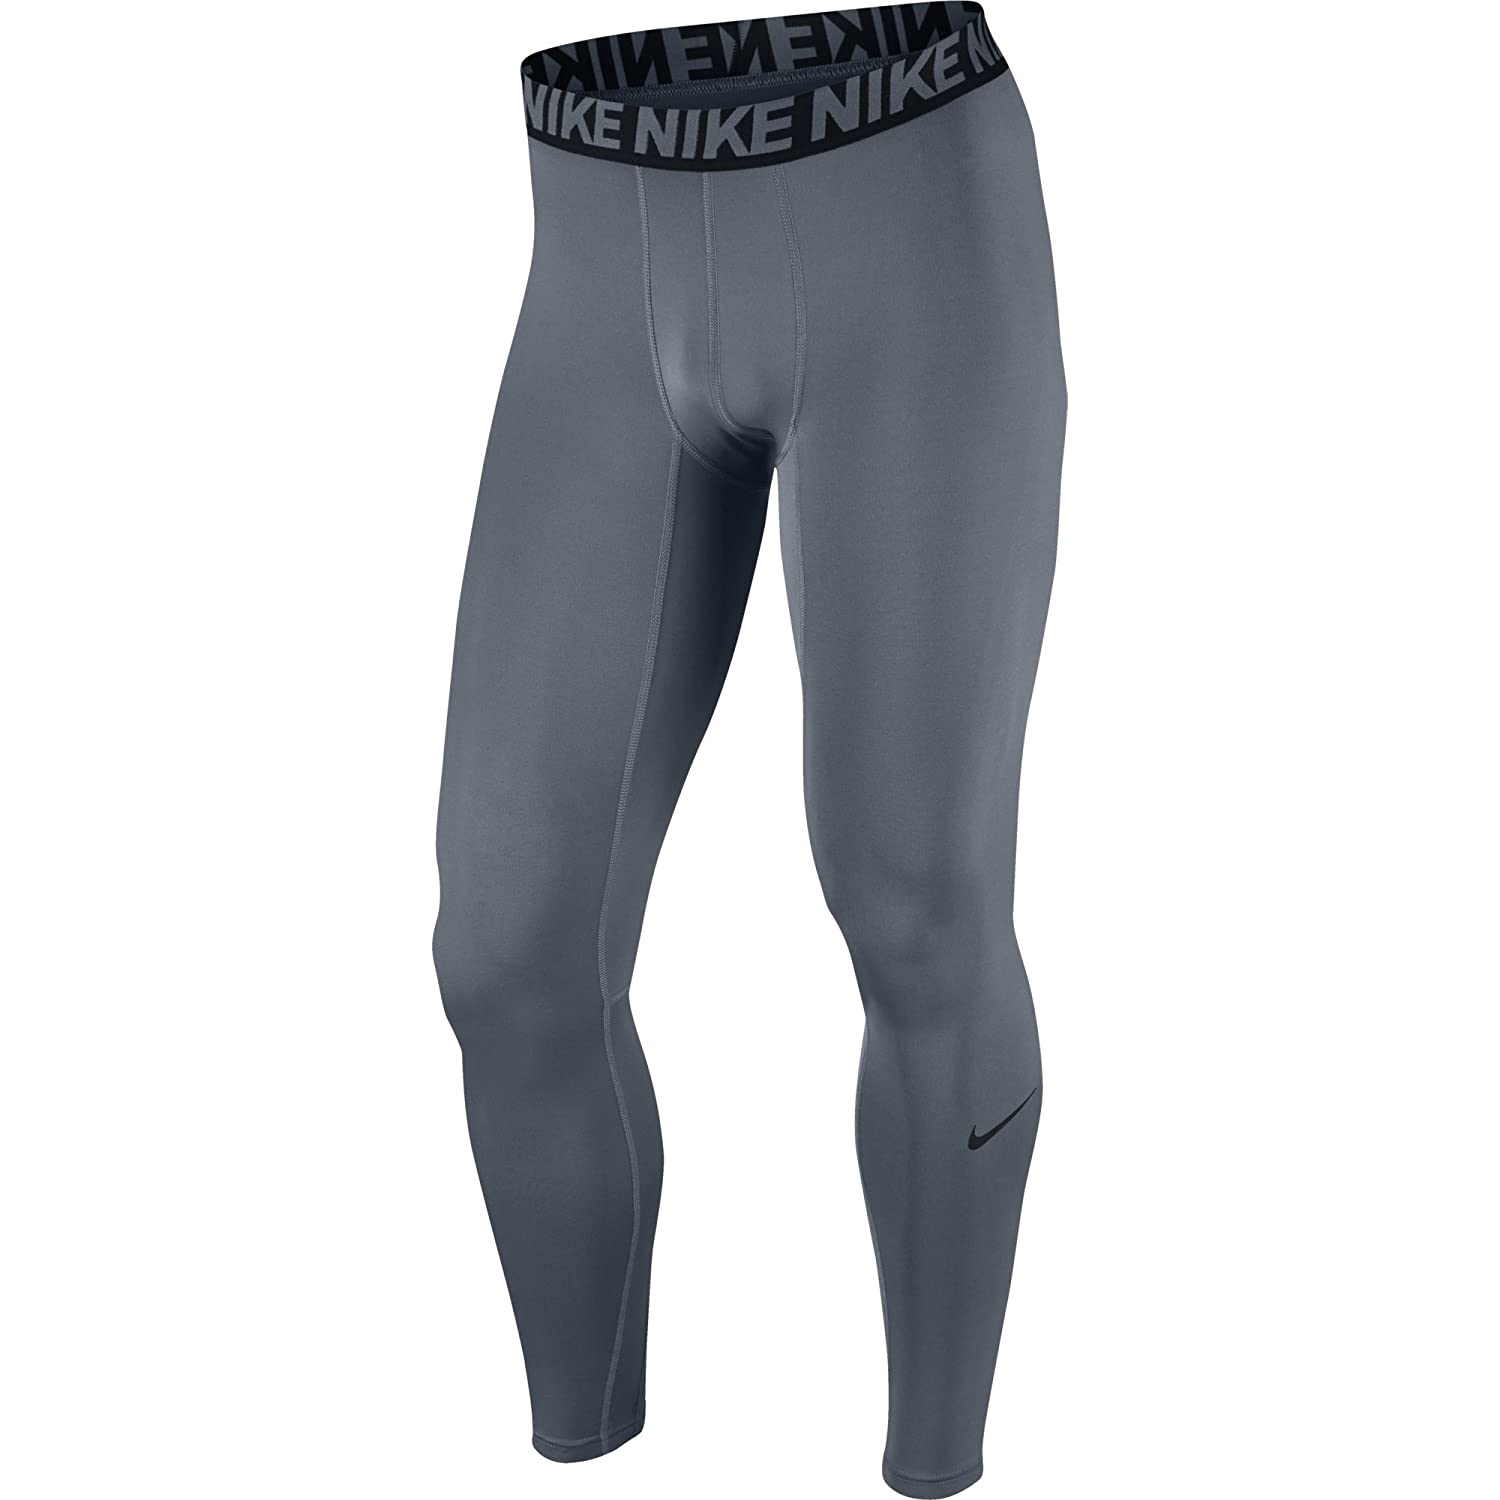 2b883b64a3ce2 Buy NIKE Men s Baselayer Tights Online at Low Prices in India - Amazon.in